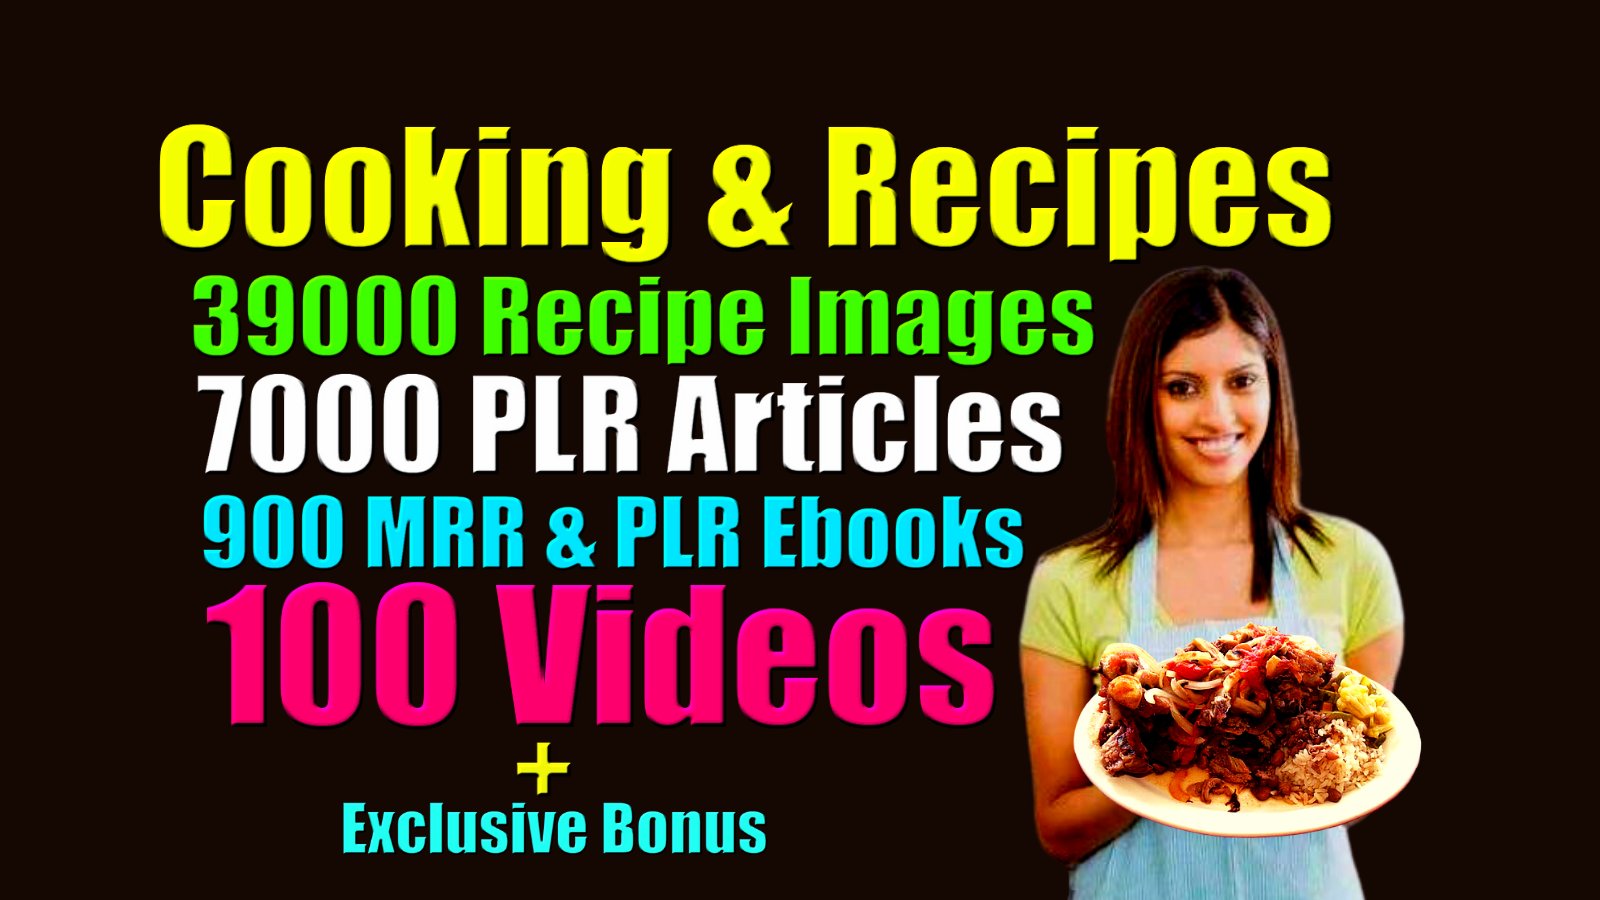 I will give Cooking recipe images,  plr ebooks,  plr articles and videos